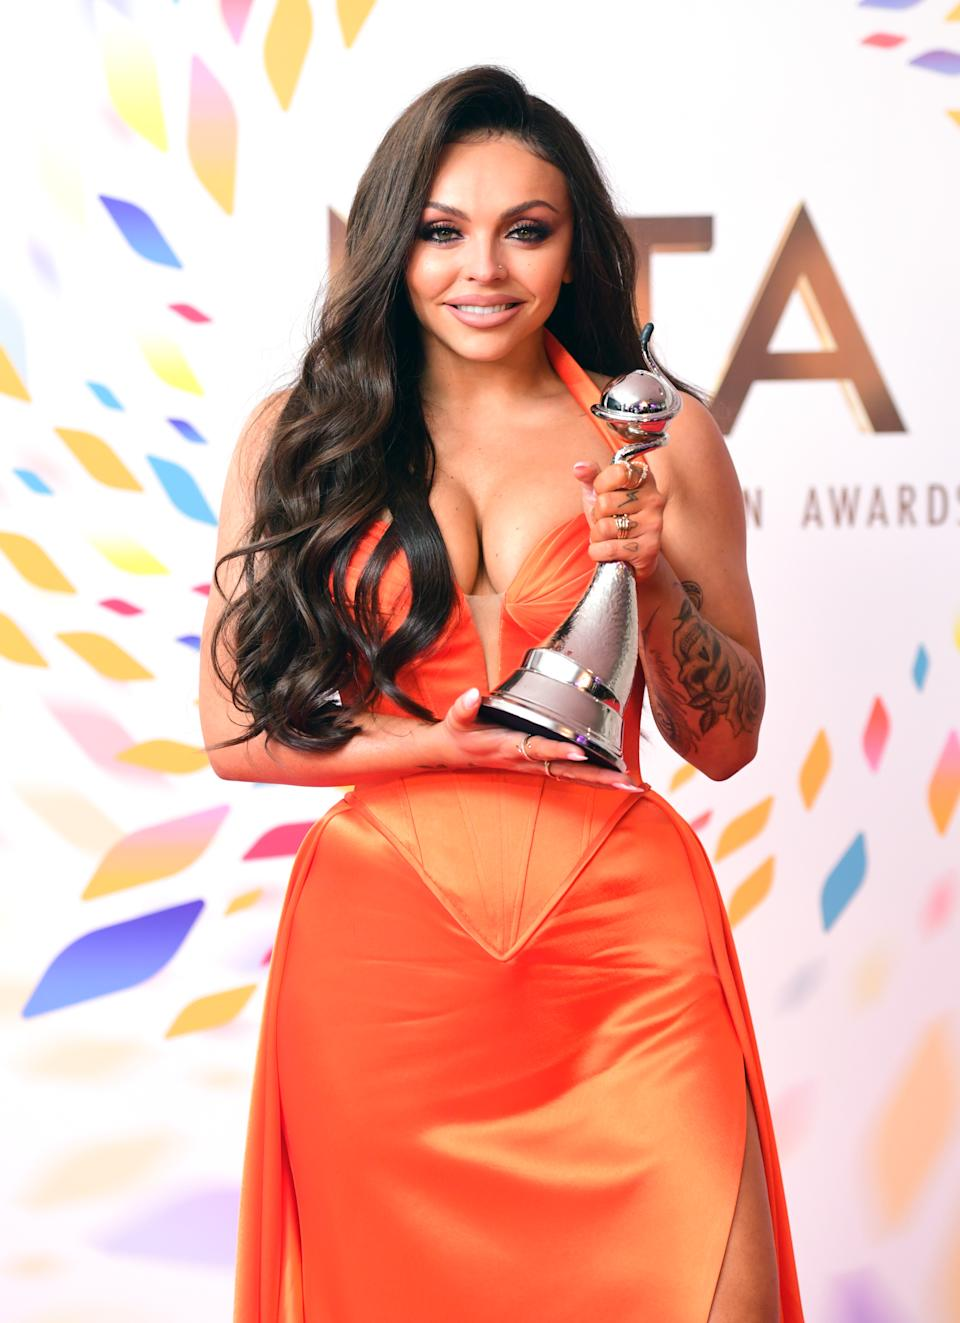 Jesy Nelson with the award for best factual in the Press Room during the National Television Awards at London's O2 Arena. (Photo by Ian West/PA Images via Getty Images)